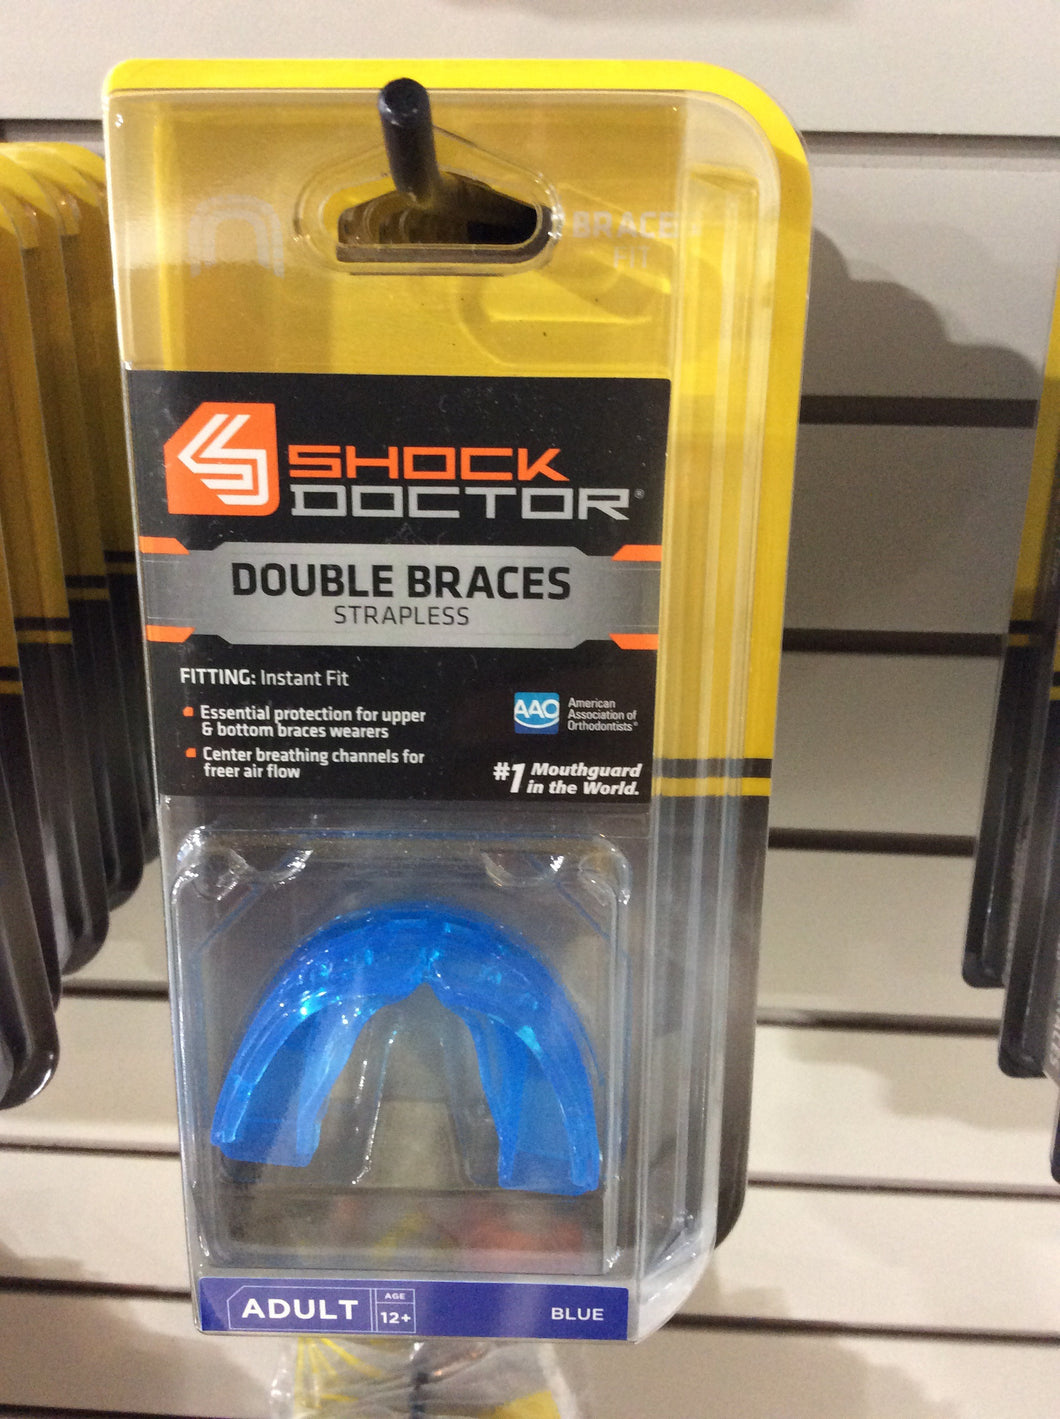 Double Braces Strapless mouthguard